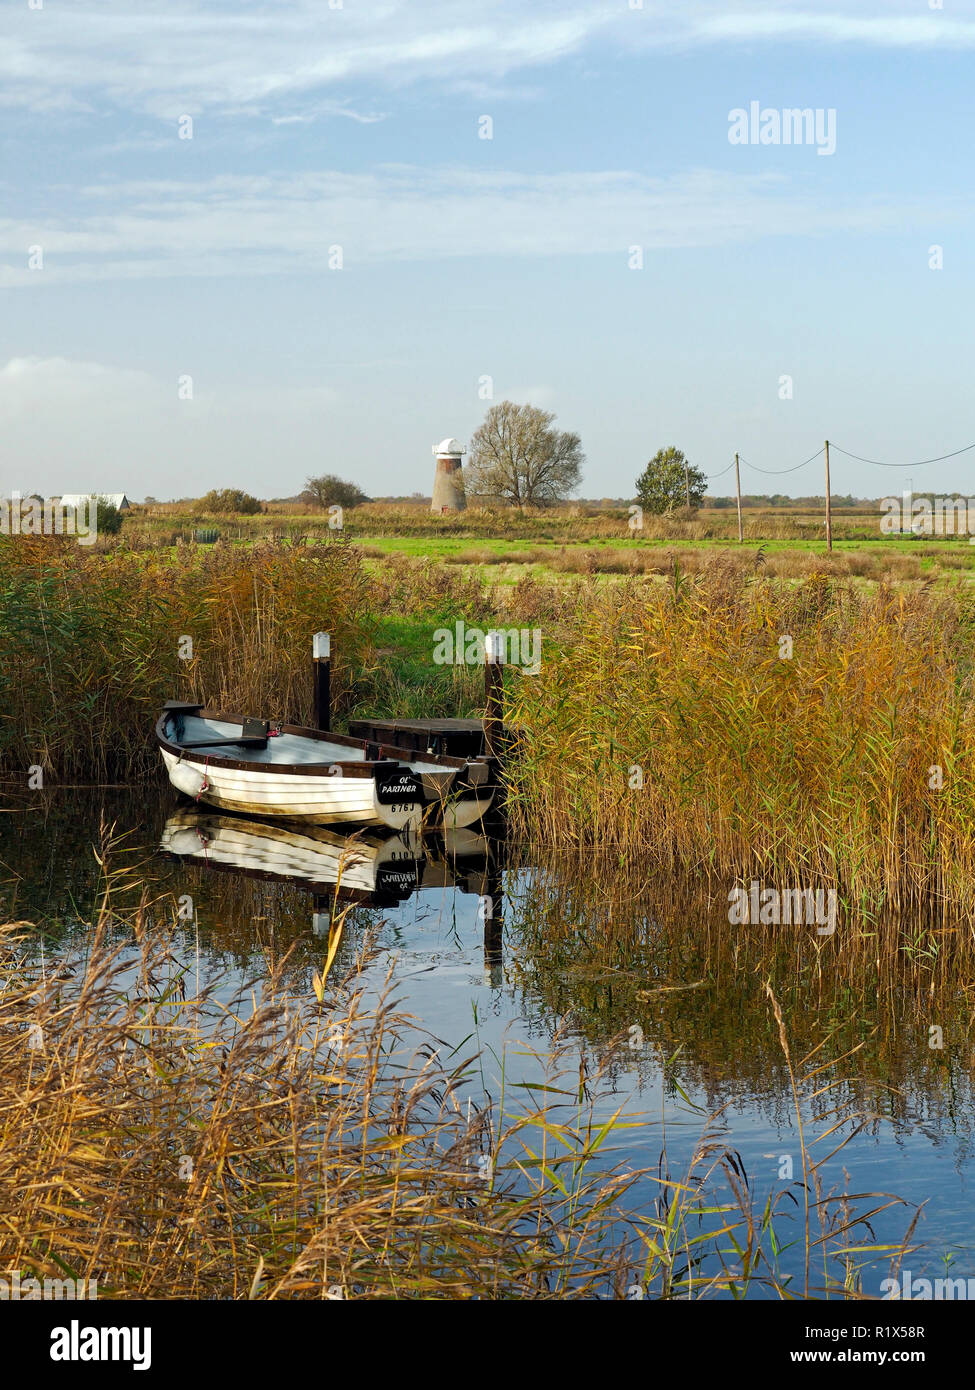 Boats moored in the narrow cut of West Somerton staithe, a remote part of the Norfolk Broads accessed via the River Thurne and Martham Broad. Stock Photo